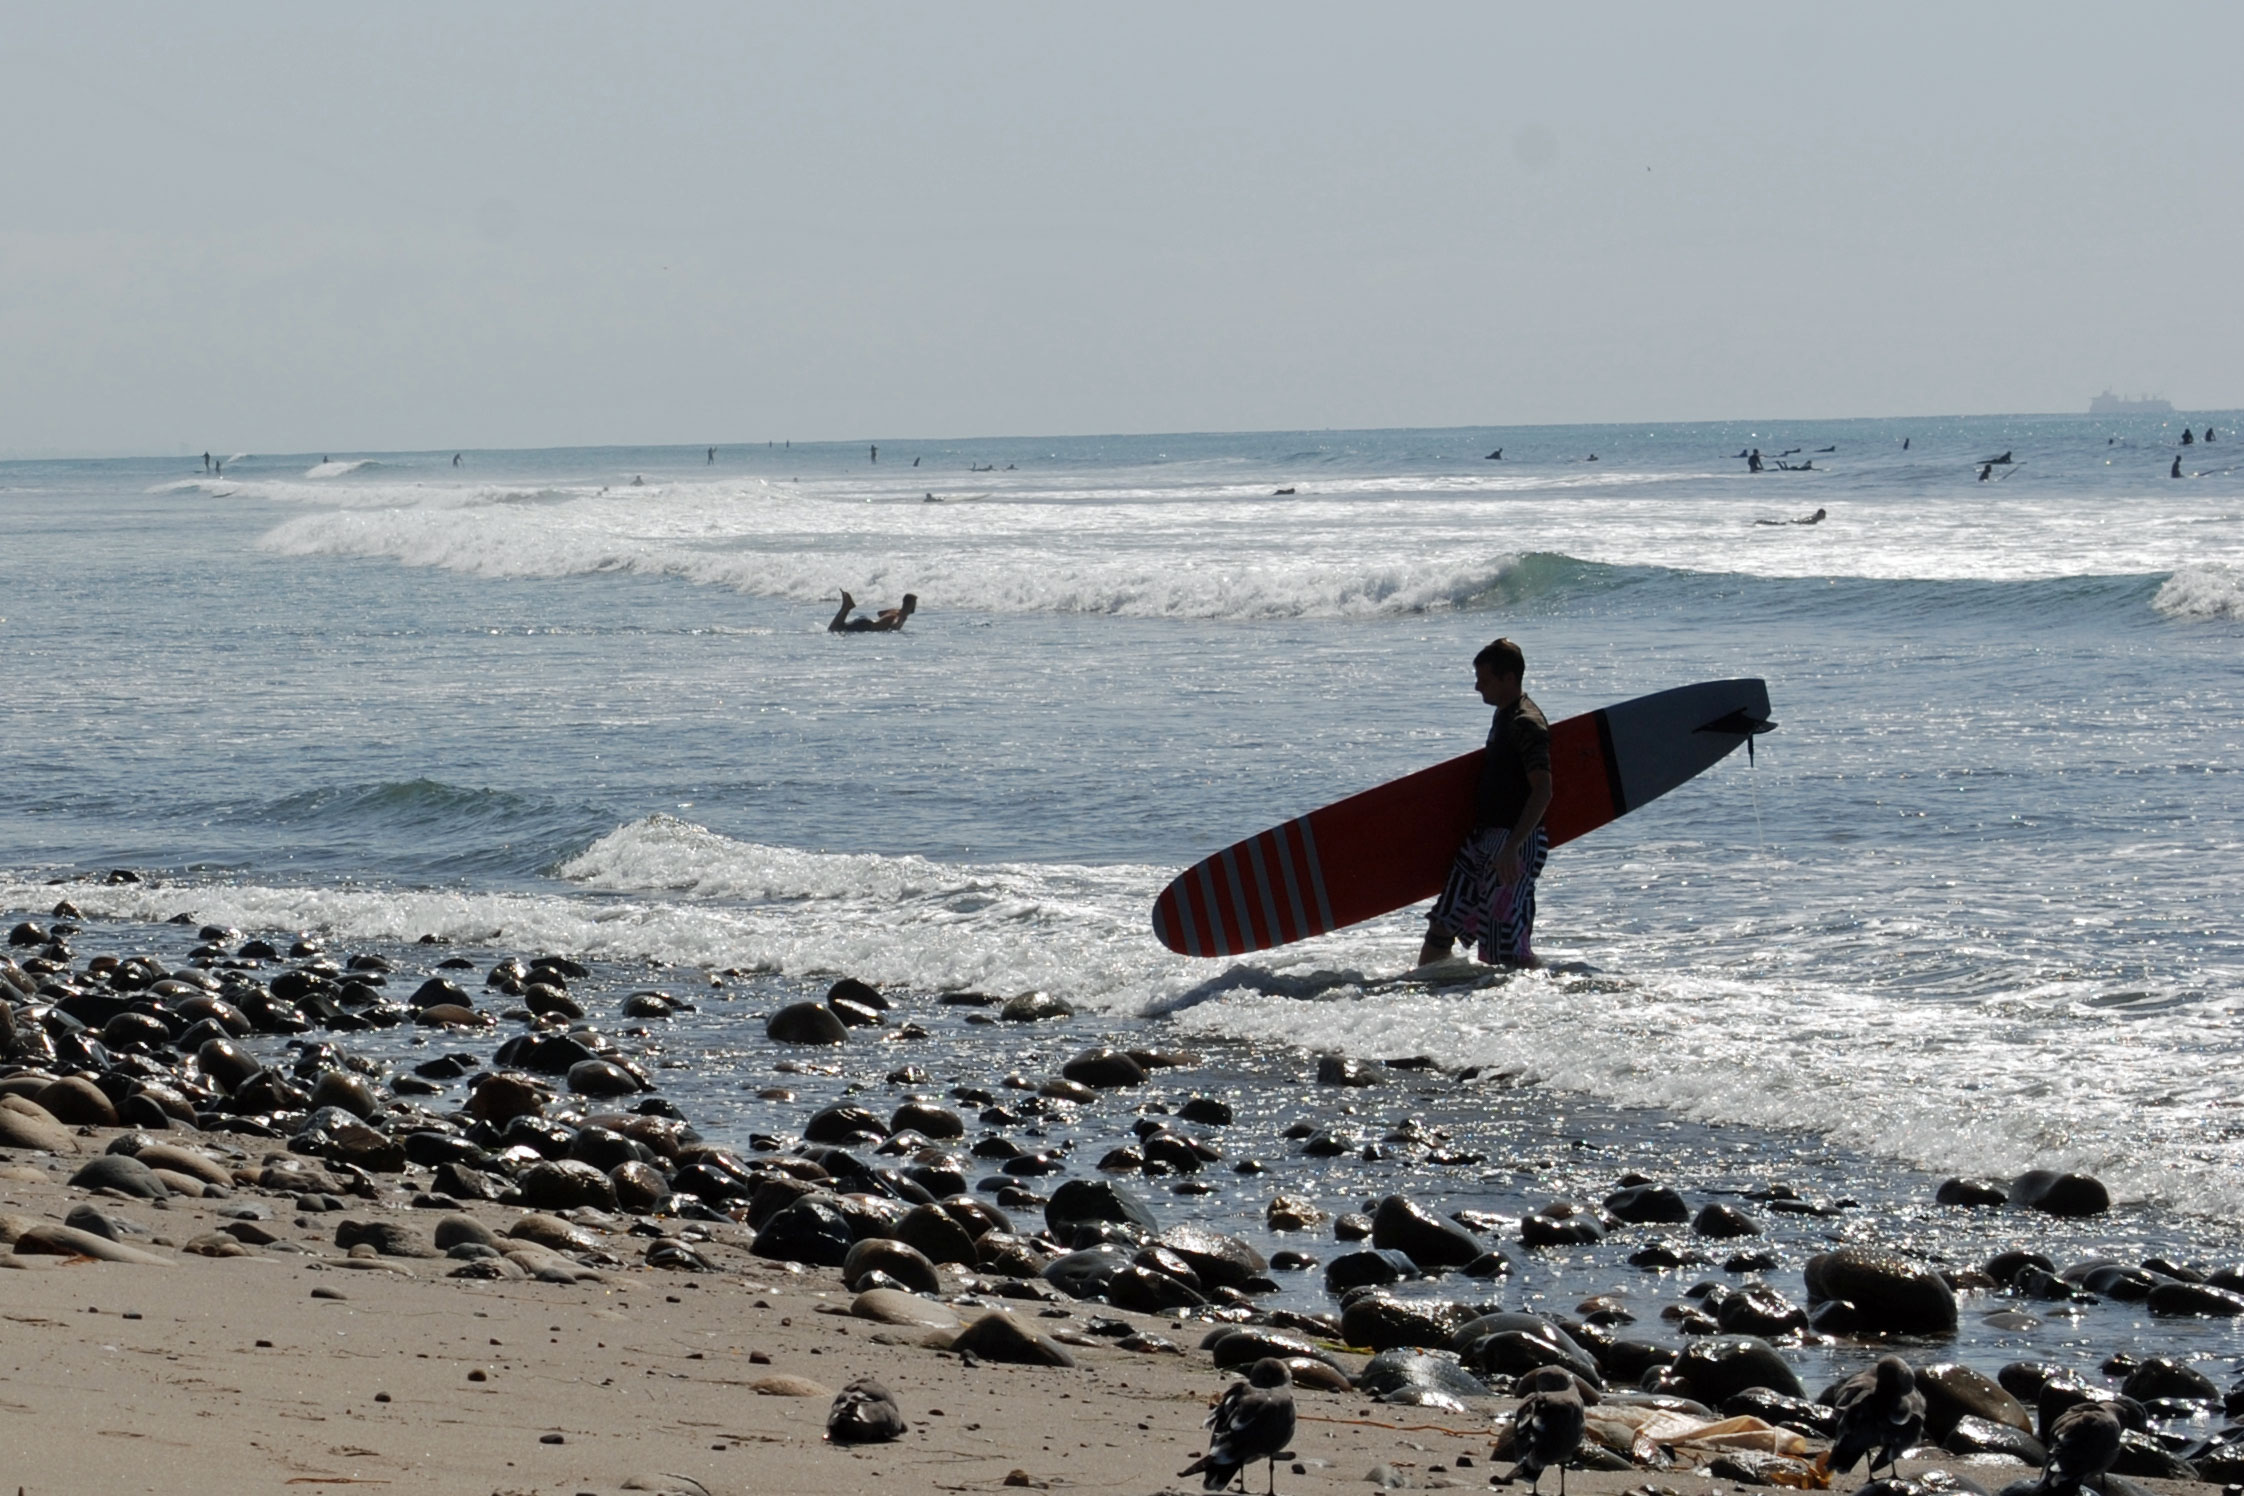 surfers at San Onofre Beach, CA